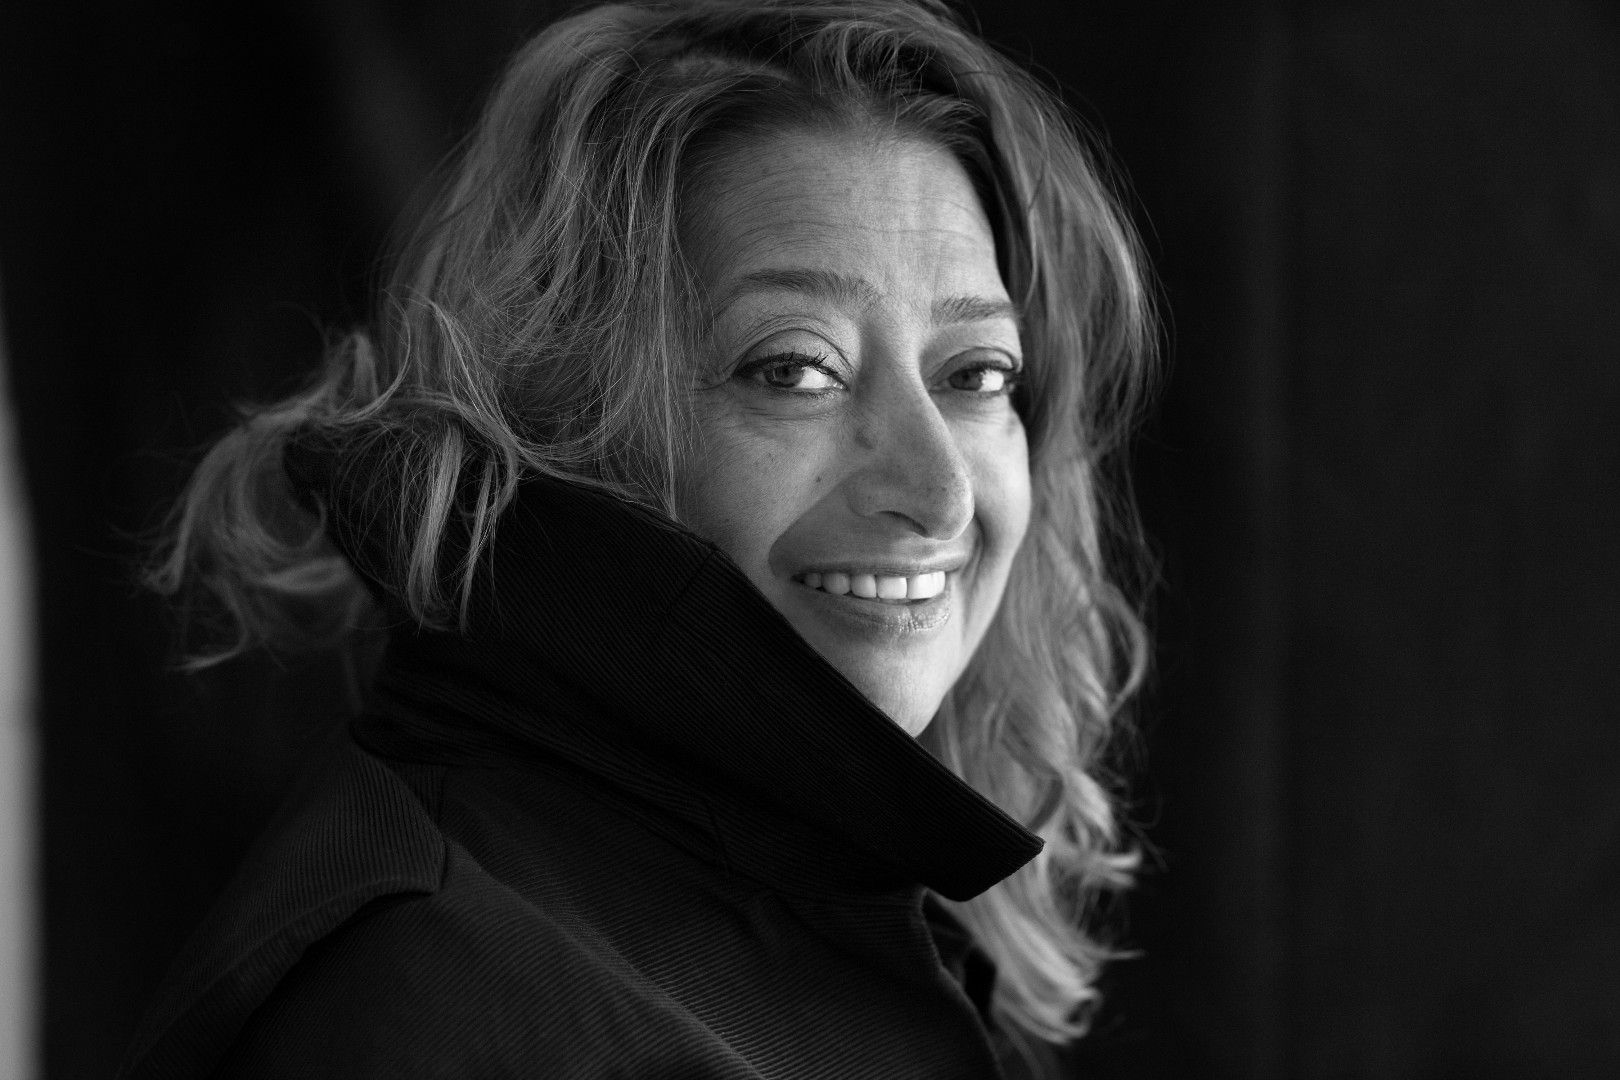 DISPARITION DE ZAHA HADID (1950-2016)